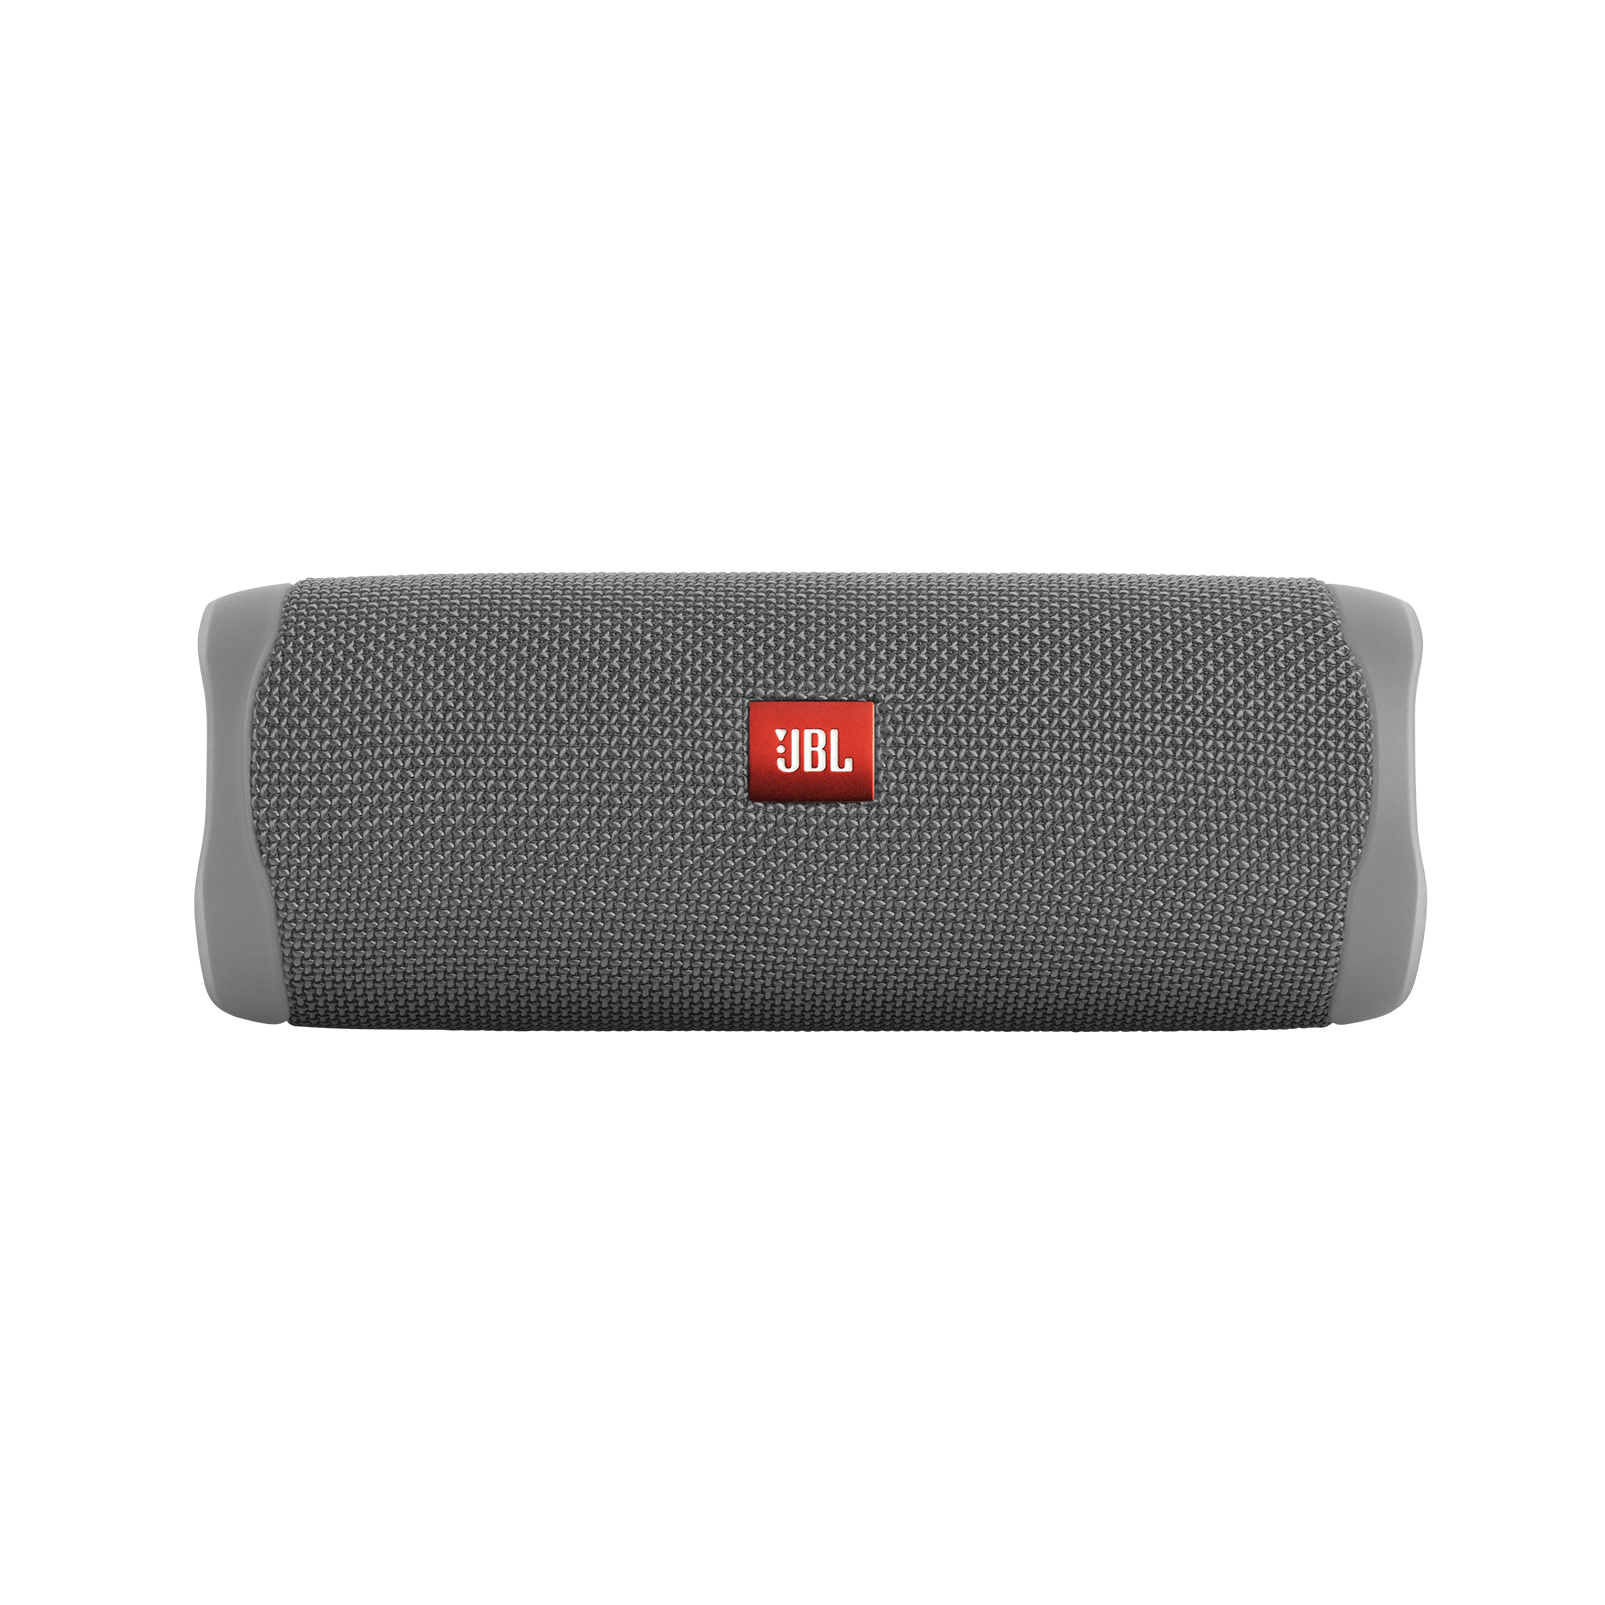 JBL FLIP 5 - Grey - Portable Waterproof Speaker - Front